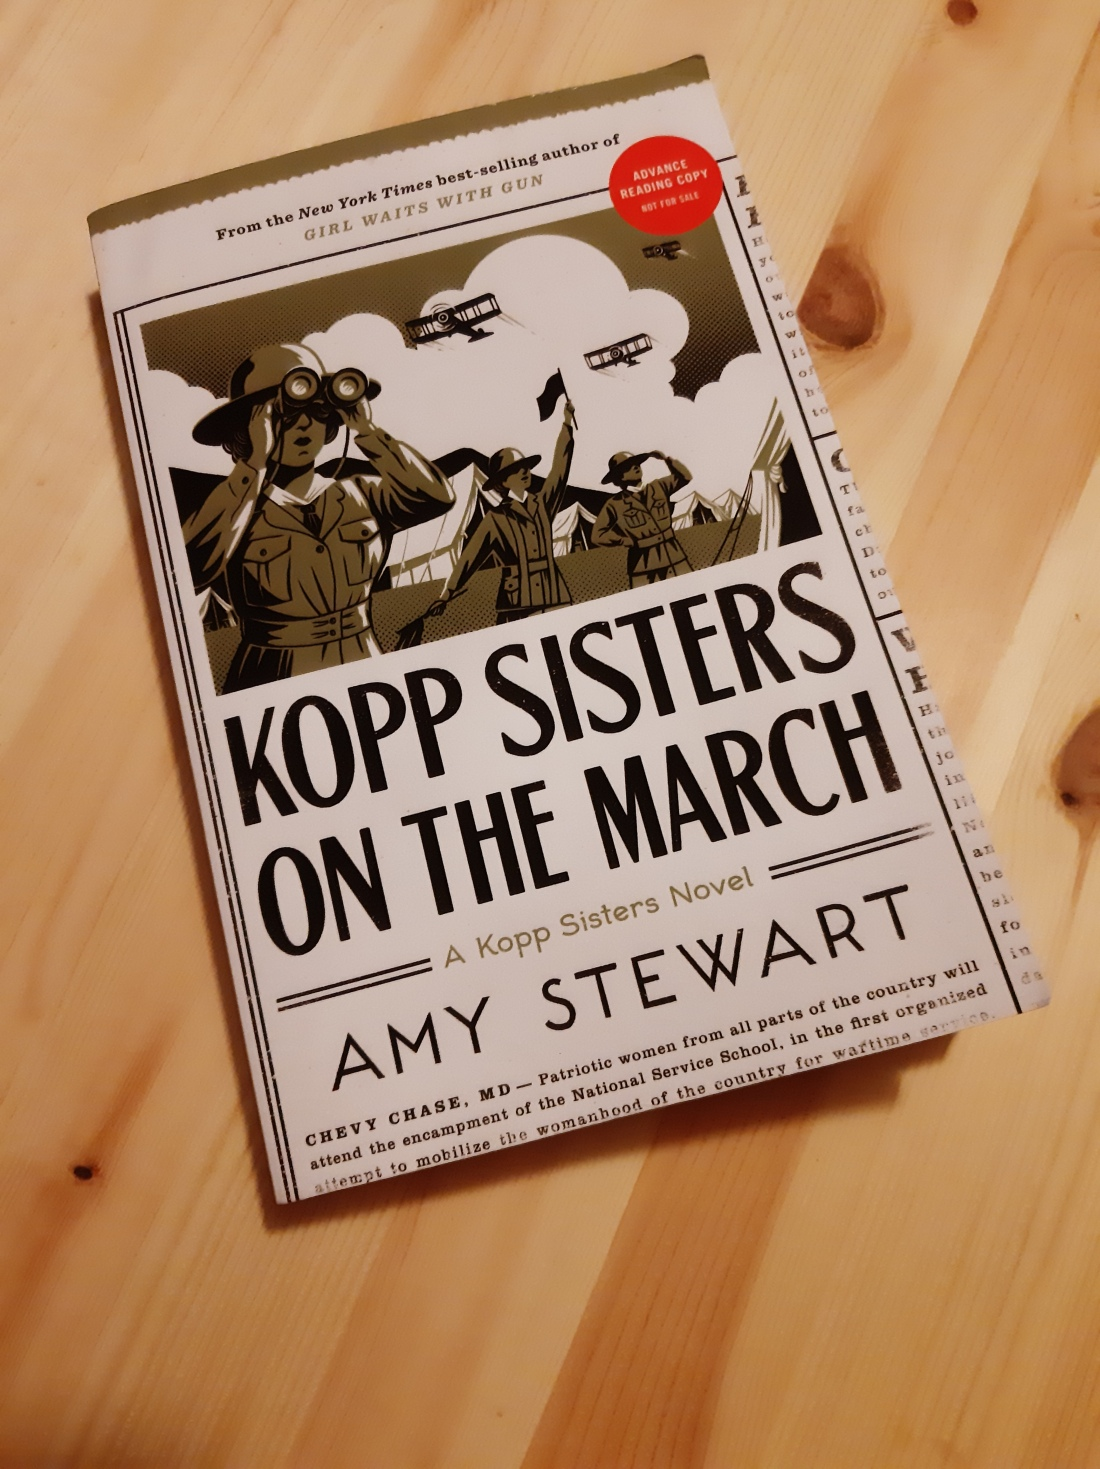 Advance paperback copy of Kopp Sisters on the March by Amy Stewart against a wooden background. Cover art shows three women in military-style dress in an outdoor area, biplanes in the sky and tents on the grounds surrounding them. The woman in the foreground holds binoculars to her eyes, the woman in the middle ground raises signaling flags, and the woman in the background holds a hand up to her hat as if surveying the goings-on of the camp.